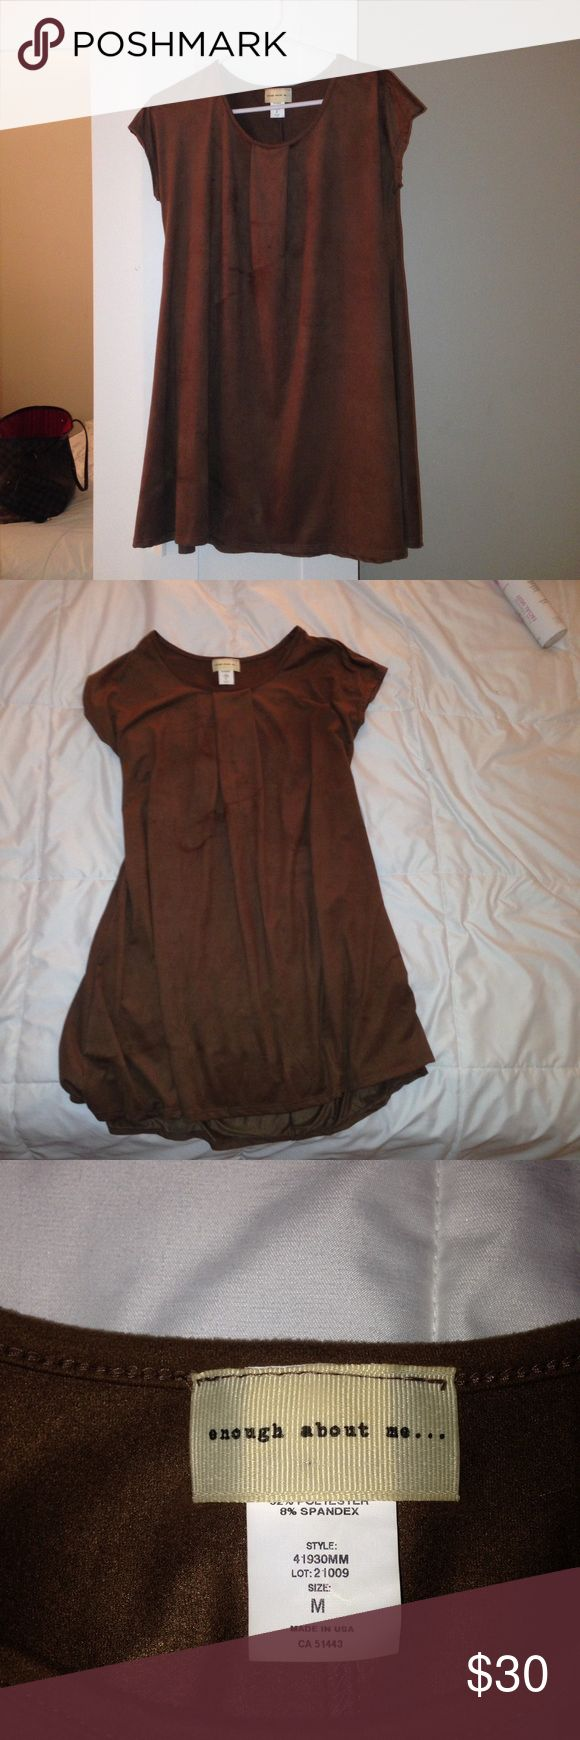 Brown Suede Dress Worn once. Suede dress Dresses Mini